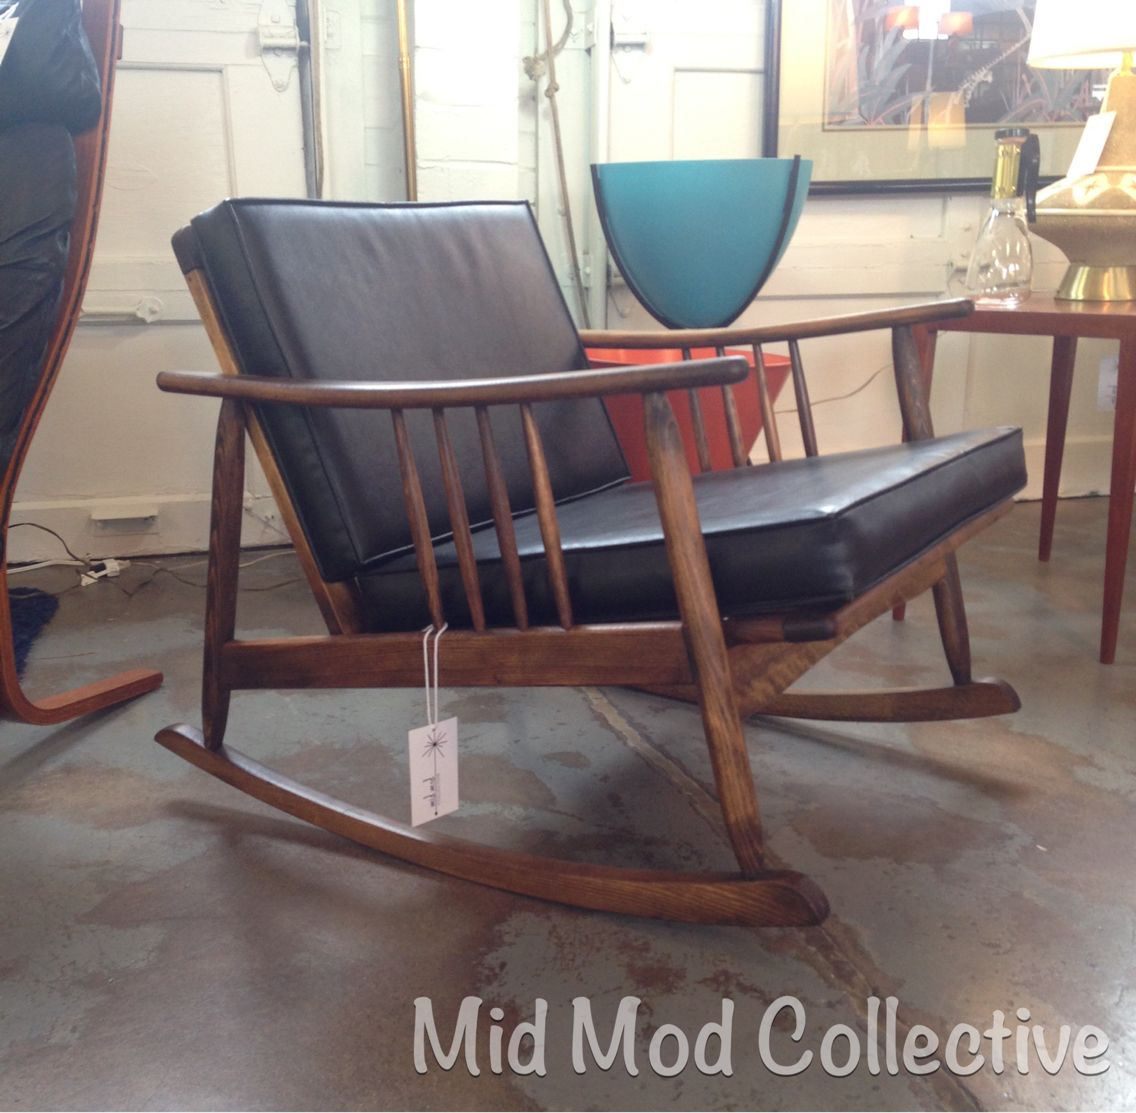 Rare, MCM lounge rocker. Available now at Mid Mod Collective. Email midmodcollective@gmail.com for more info. SOLD!